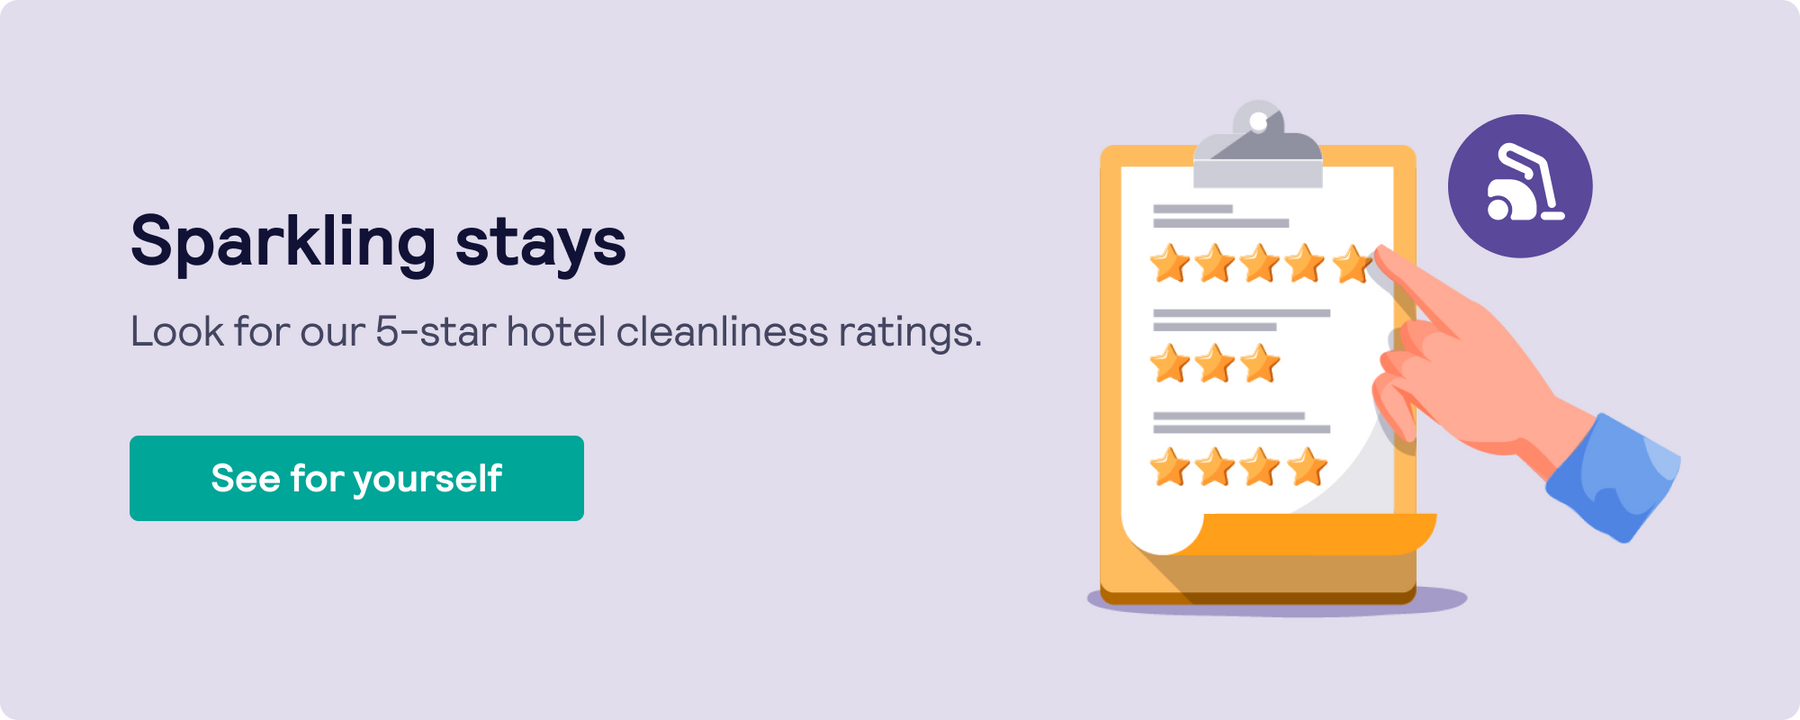 Black Friday Cyber Monday Hotel Deals 2020 Skyscanner